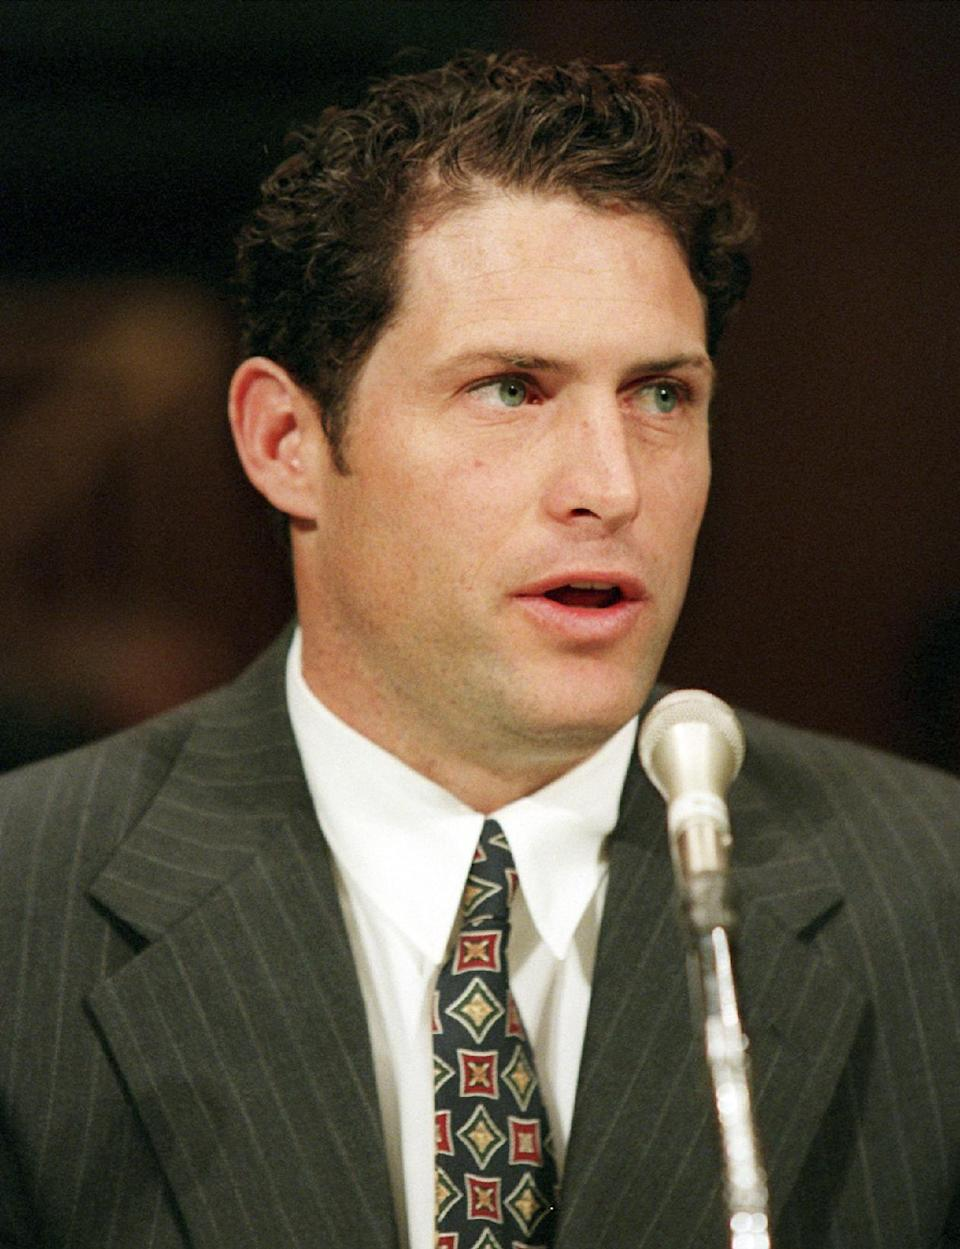 Ex-NFL QB to speak at Mormon conference on gays